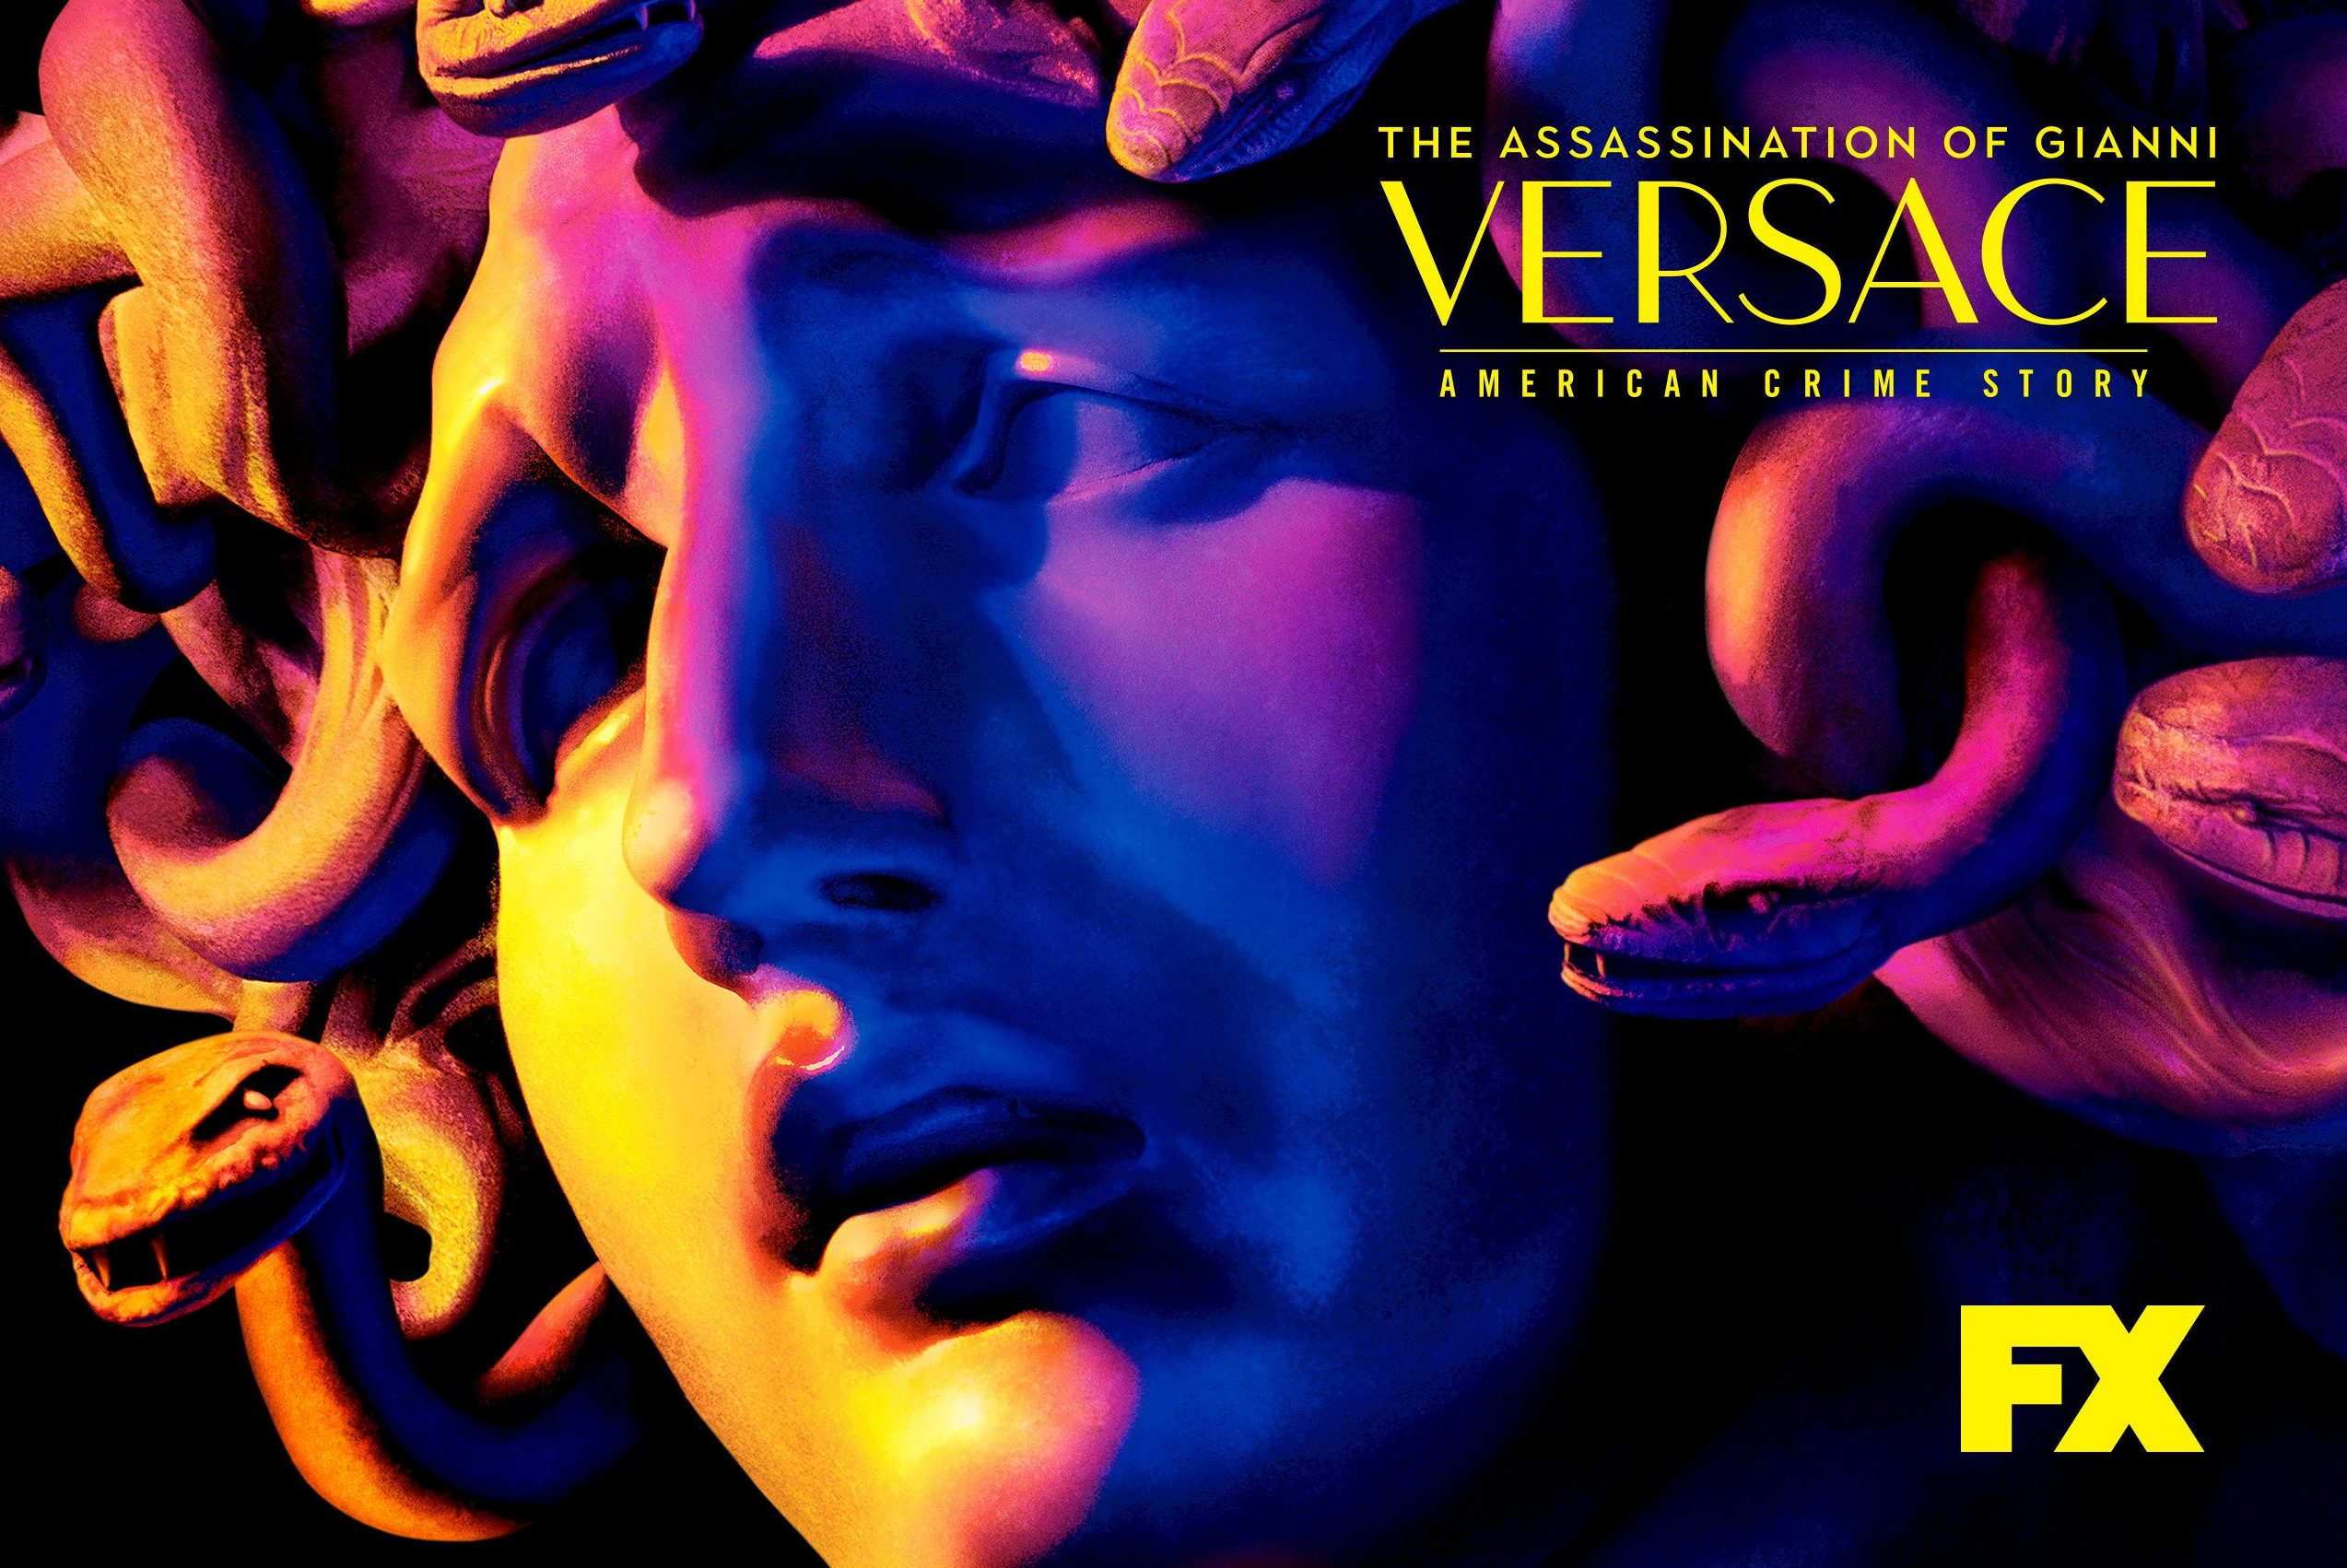 gianni versace essay The name was founded by gianni versace in 1978 today versace is the number one international fashion house versace makes high quality clothing, furniture, makeup and clothes for men and women.